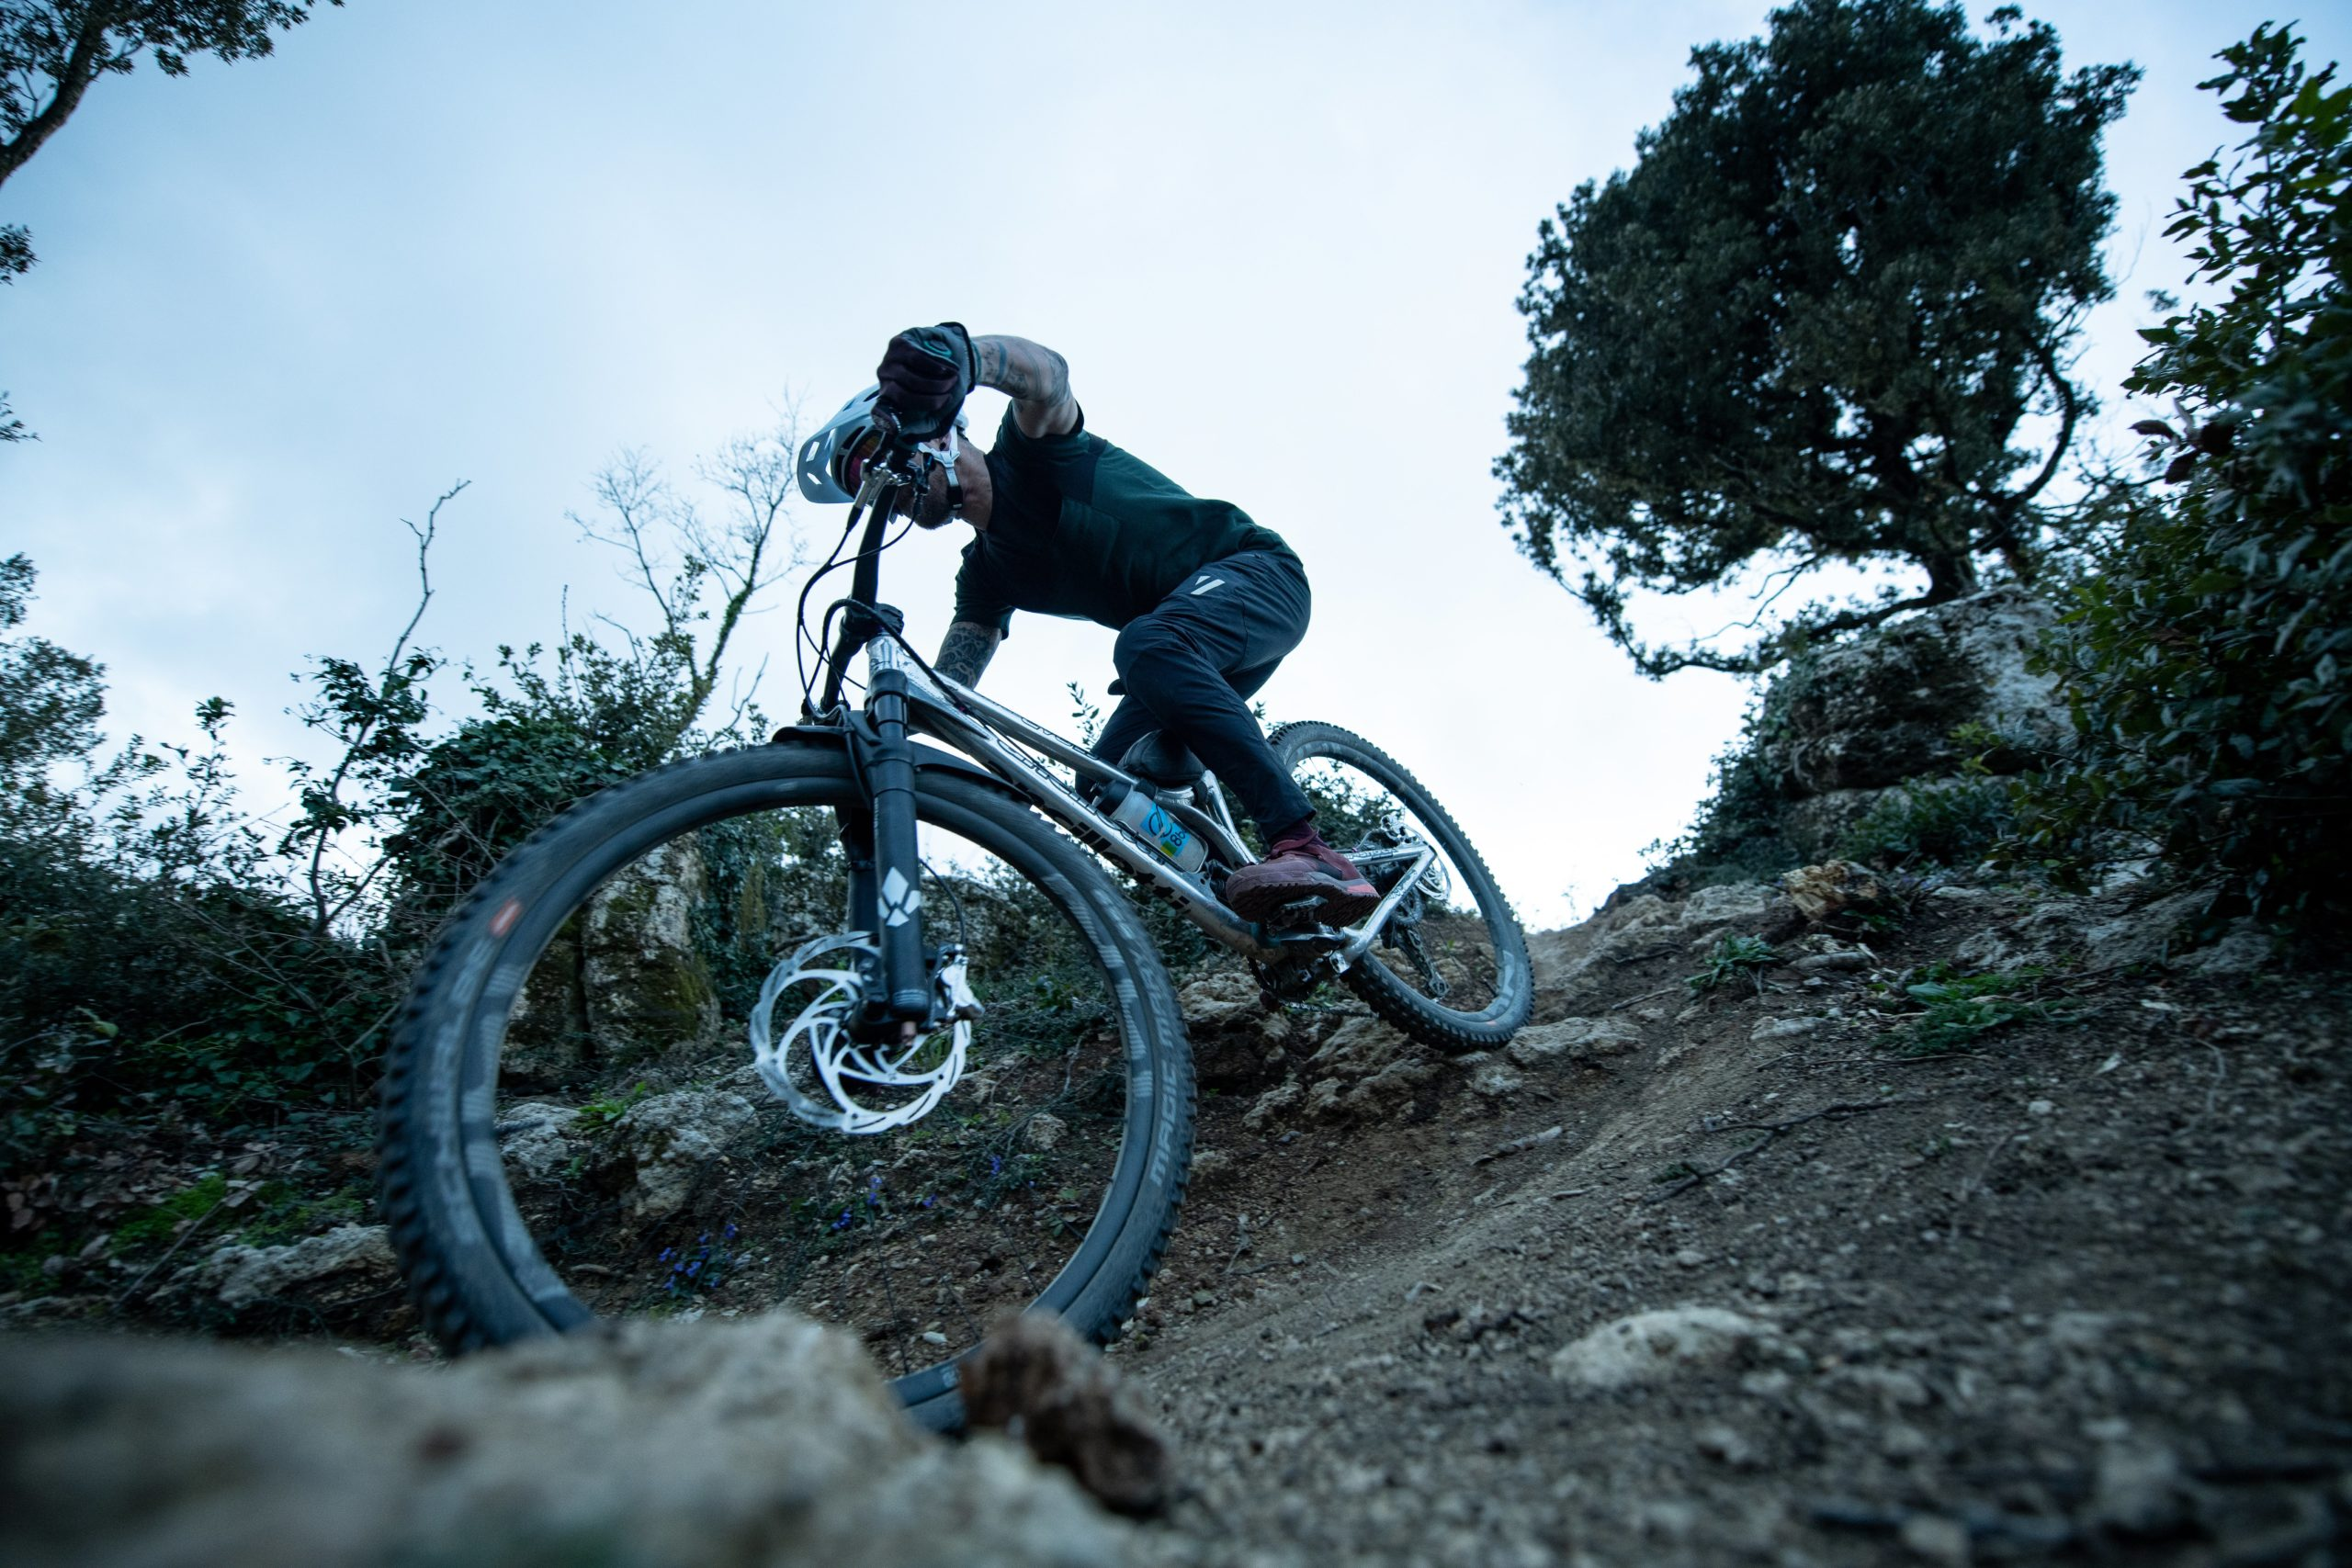 LG1 Race Carbon MTB Wheels From e*thirteen are Mid-Weight and Mid-Price, but offer Max Stiffness [Review] - Singletracks Mountain Bike News